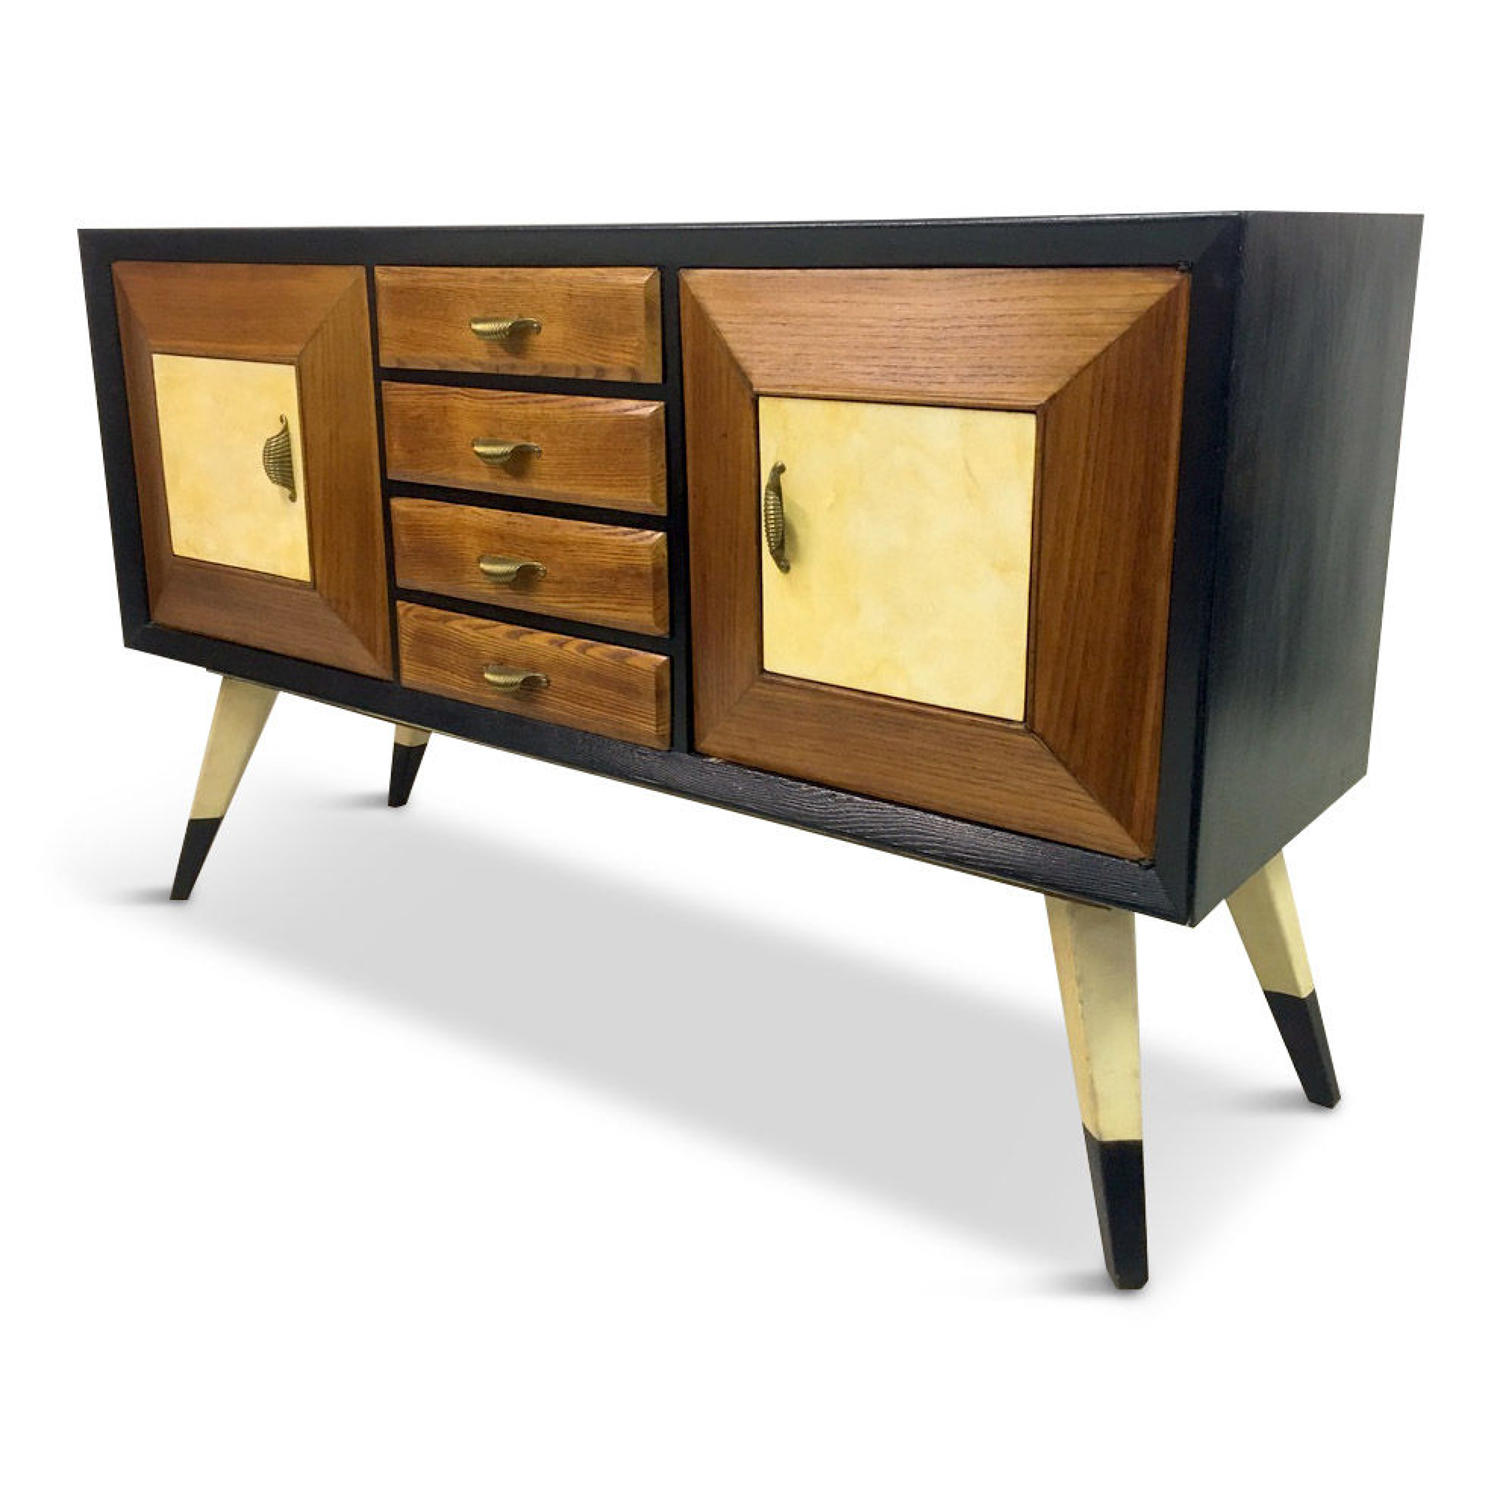 1940s Italian ebonised, oak and parchment sideboard